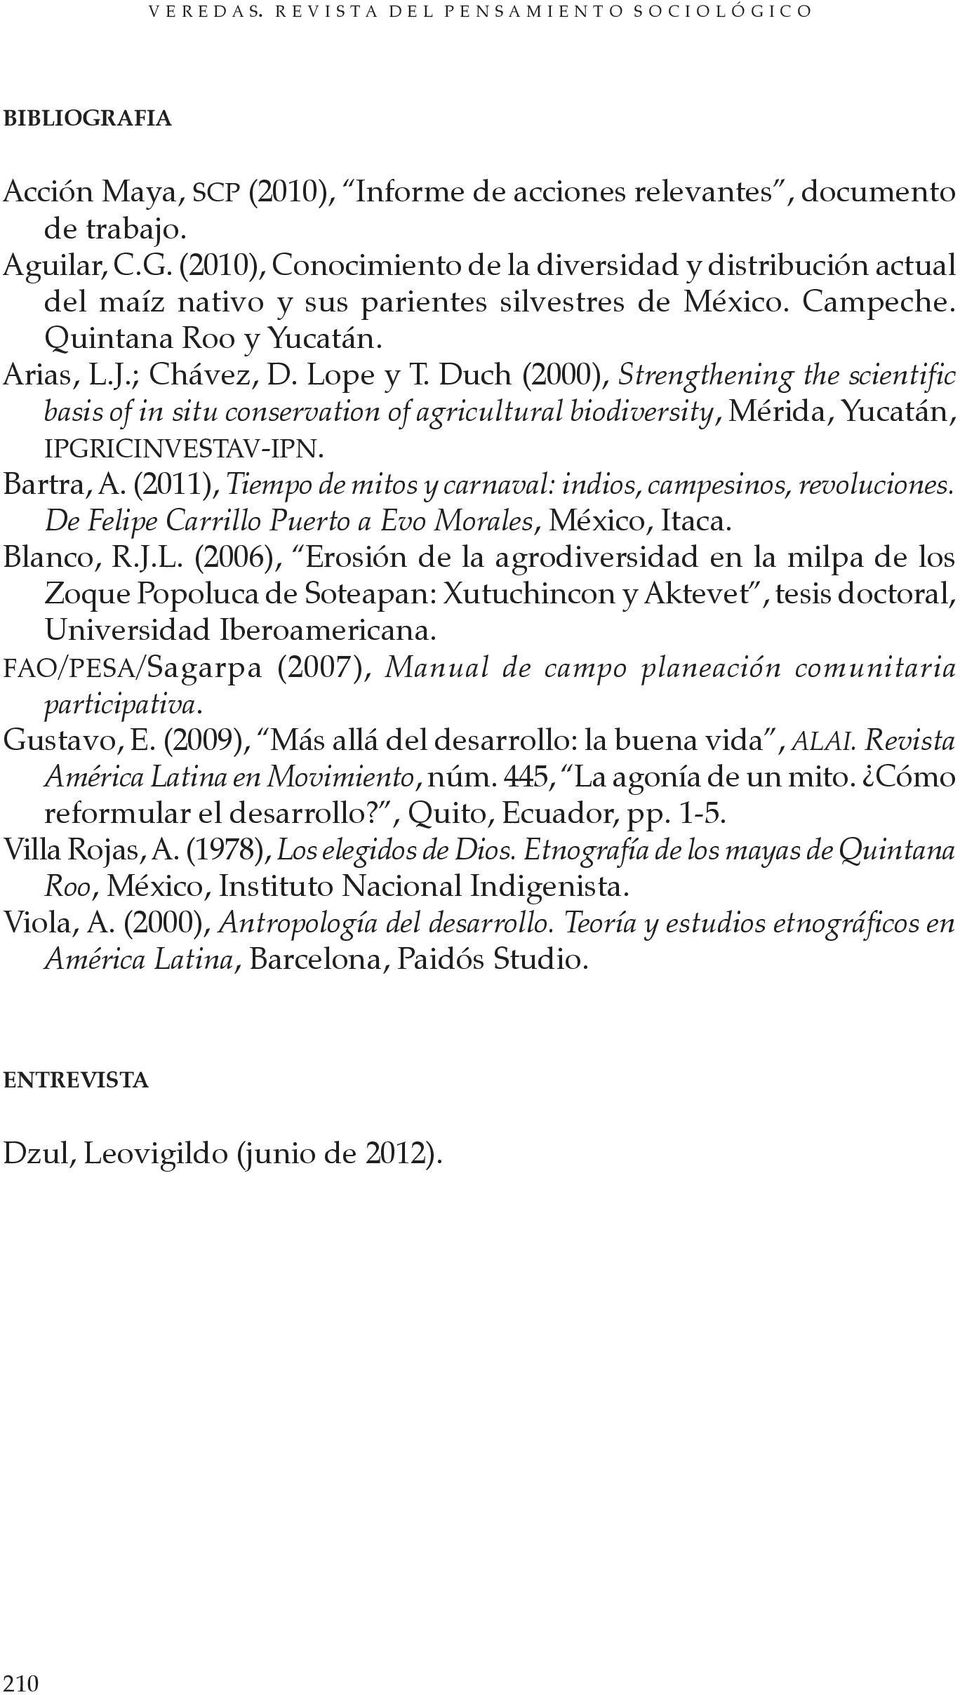 Duch (2000), Strengthening the scientific basis of in situ conservation of agricultural biodiversity, Mérida, Yucatán, IPGRICINVESTAV-IPN. Bartra, A.